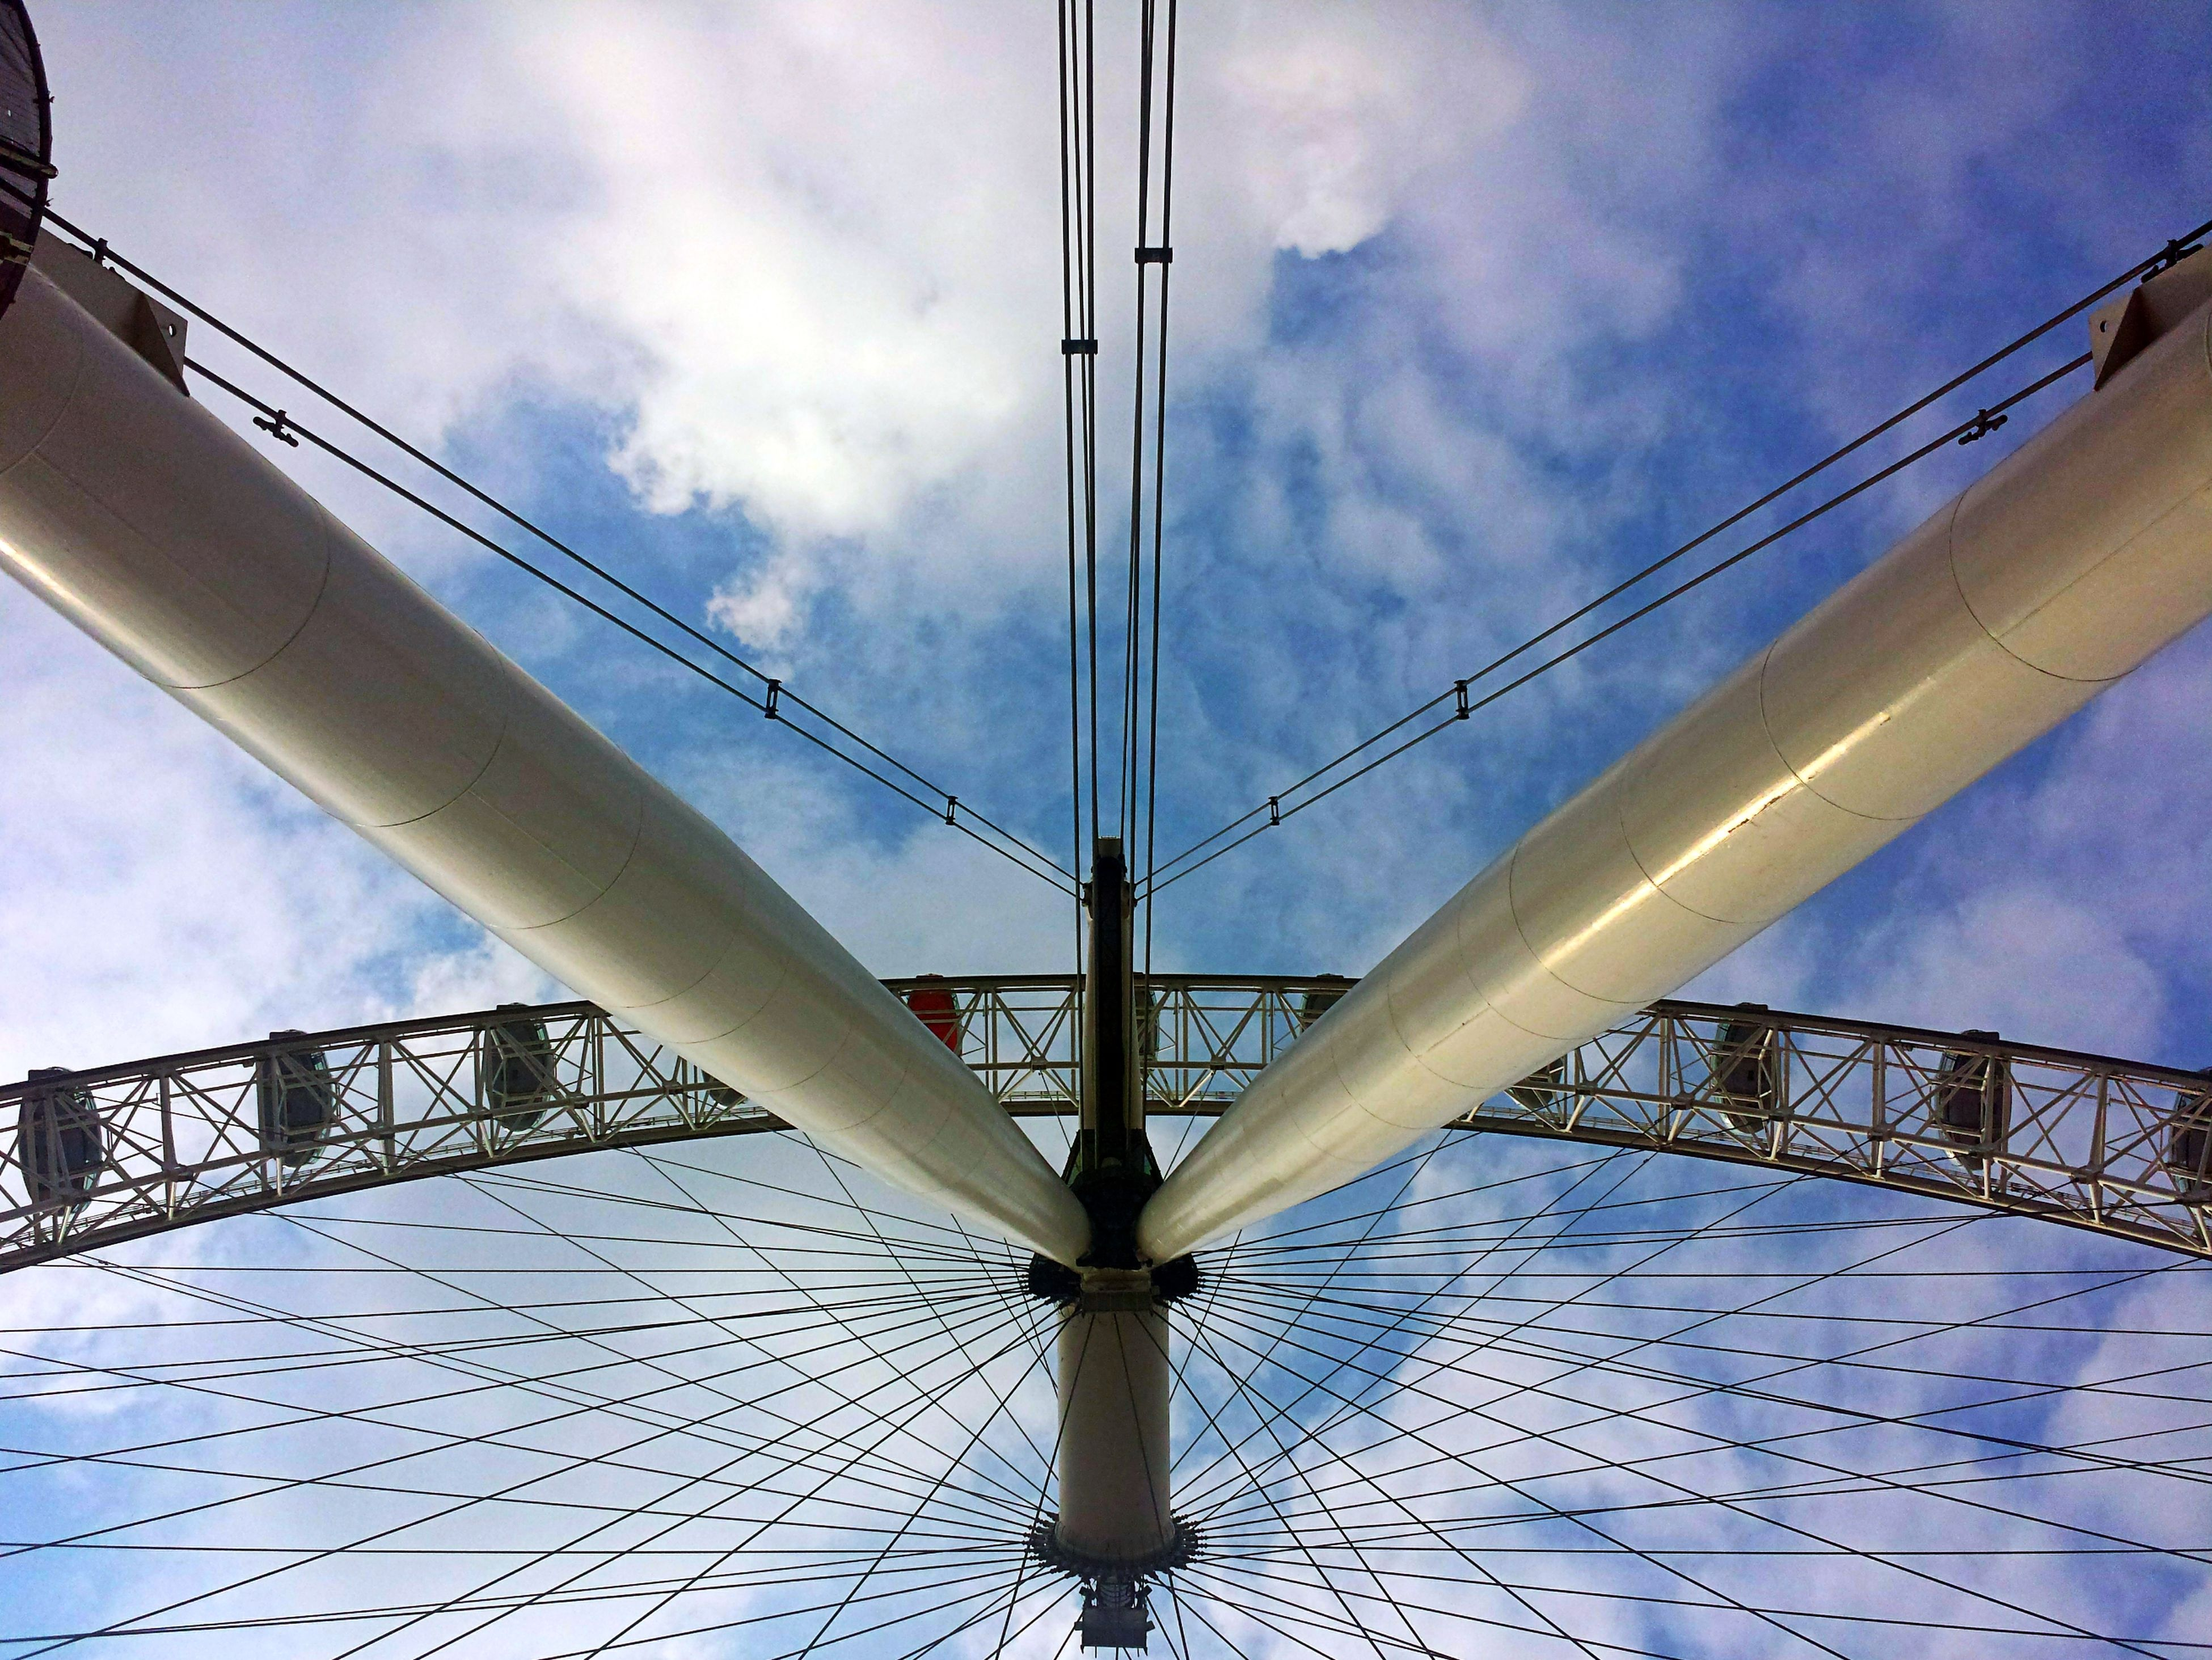 low angle view, connection, sky, engineering, built structure, architecture, bridge - man made structure, cloud - sky, suspension bridge, steel cable, transportation, cloud, cloudy, metal, cable-stayed bridge, cable, bridge, day, famous place, outdoors